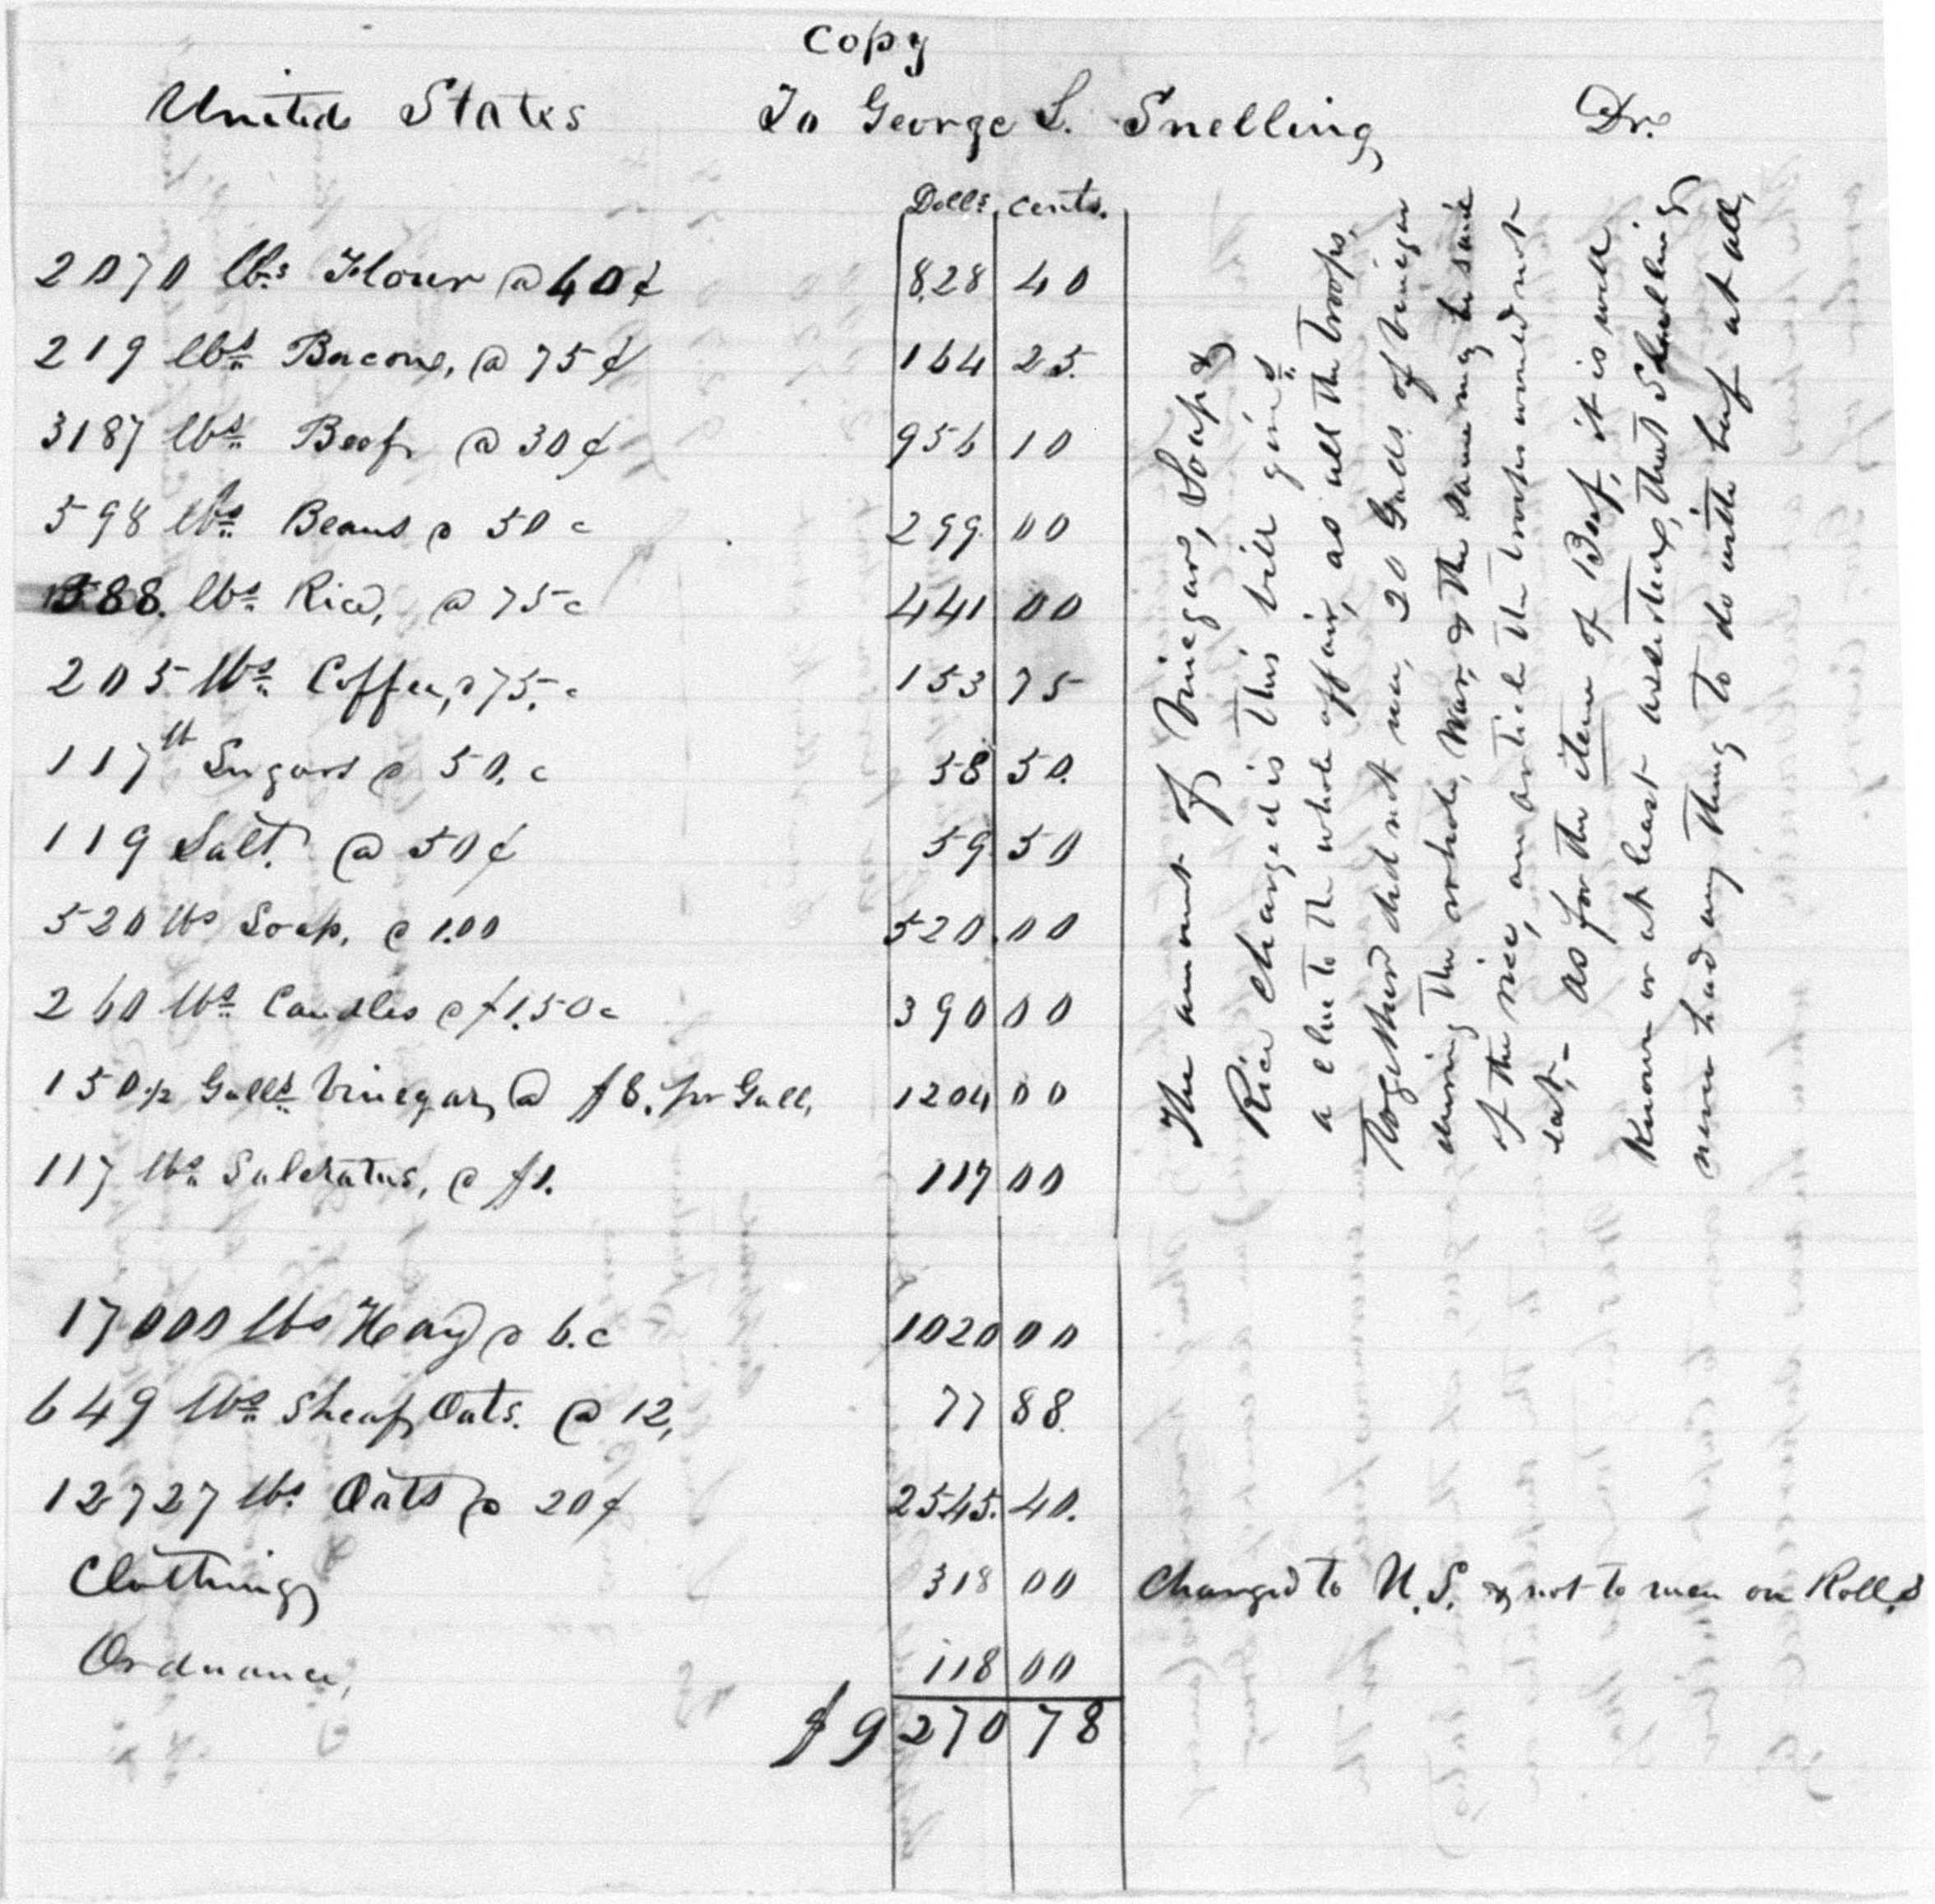 Goodall's accounting, Snelling's division, 1855 Rogue River Indian War